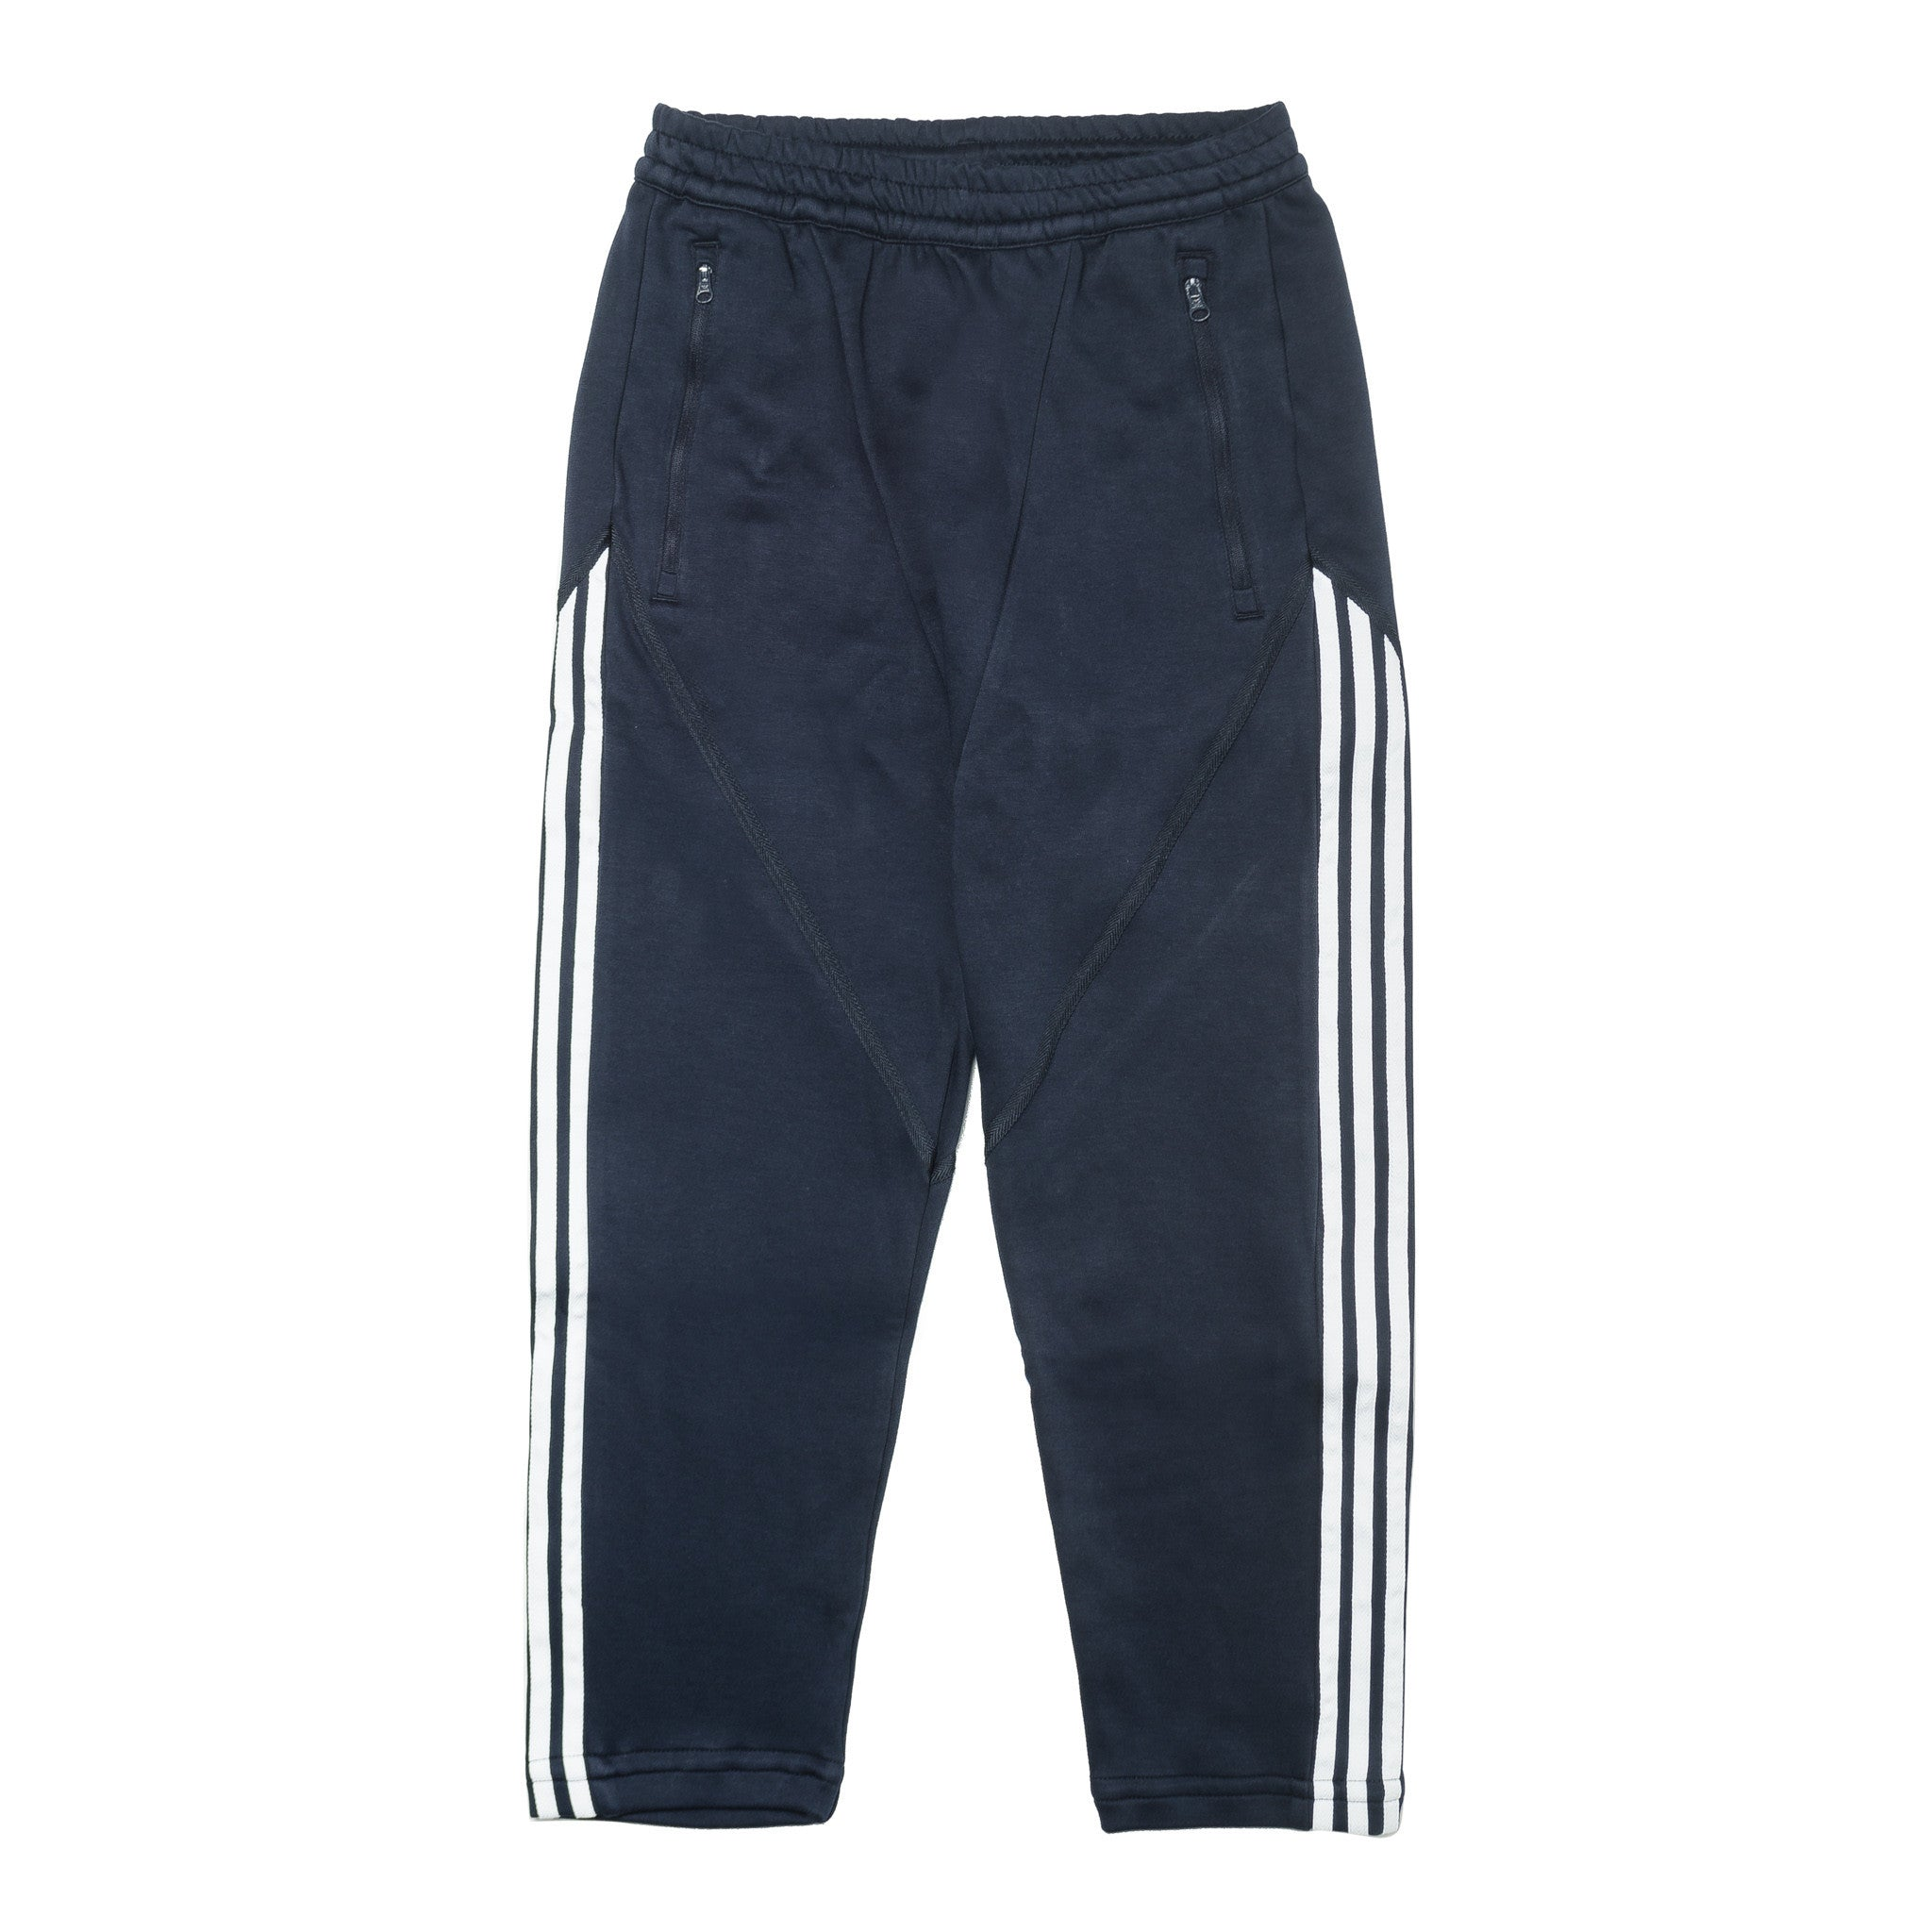 NMD Track Pant BK2210 Navy